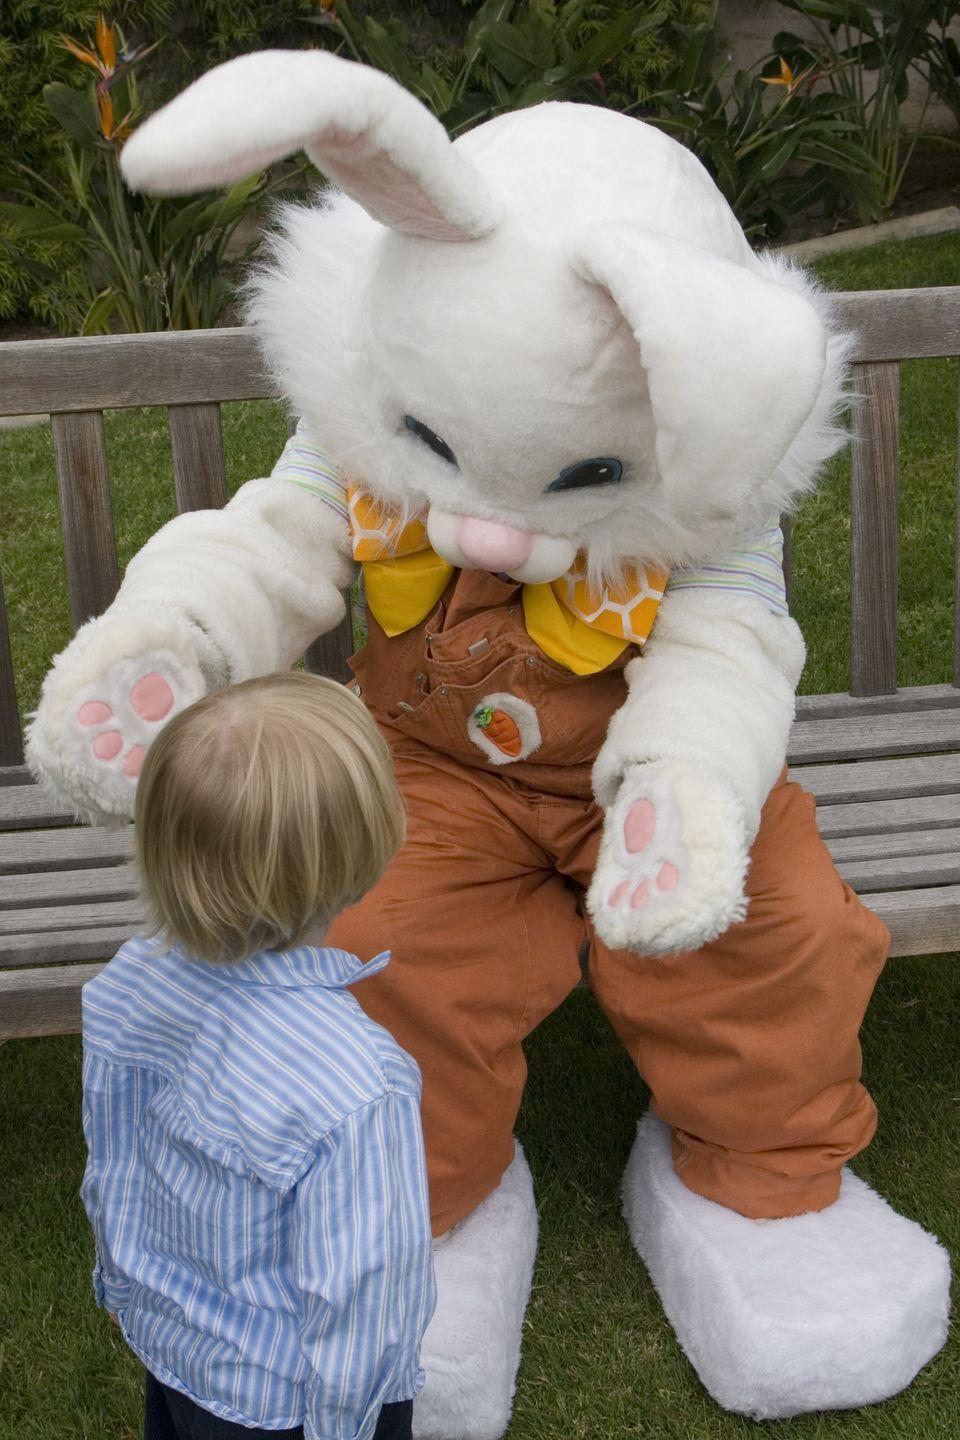 """<p>Like many Easter traditions, the Easter Bunny evolved out of ancient fertility and spring celebrations. Rabbits breed like, well, rabbits, and give birth in the spring. So, in places where the fields became overrun with baby bunnies, it was natural to incorporate the rabbit as a symbol for spring and, eventually, Easter.</p><p>According to an old German story retold by Pamela Kennedy in her book, <a href=""""http://www.amazon.com/gp/product/0824953649/ref=as_li_ss_tl?ie=UTF8&camp=1789&creative=390957&creativeASIN=0824953649&linkCode=as2&tag=syn-yahoo-20&ascsubtag=%5Bartid%7C10055.g.191%5Bsrc%7Cyahoo-us"""" rel=""""nofollow noopener"""" target=""""_blank"""" data-ylk=""""slk:An Easter Celebration: Traditions and Customs from Around the World"""" class=""""link rapid-noclick-resp""""><em>An Easter Celebration: Traditions and Customs from Around the World</em></a>, a poor woman who loved children would hide brightly colored eggs in her garden as Easter treats. One year, while the children searched for them, they noticed a hare hopping past and believed that <a href=""""https://www.goodhousekeeping.com/holidays/easter-ideas/videos/a37397/diy-easter-bunny-wreath/"""" rel=""""nofollow noopener"""" target=""""_blank"""" data-ylk=""""slk:the animal"""" class=""""link rapid-noclick-resp"""">the animal</a> had left the eggs.</p>"""